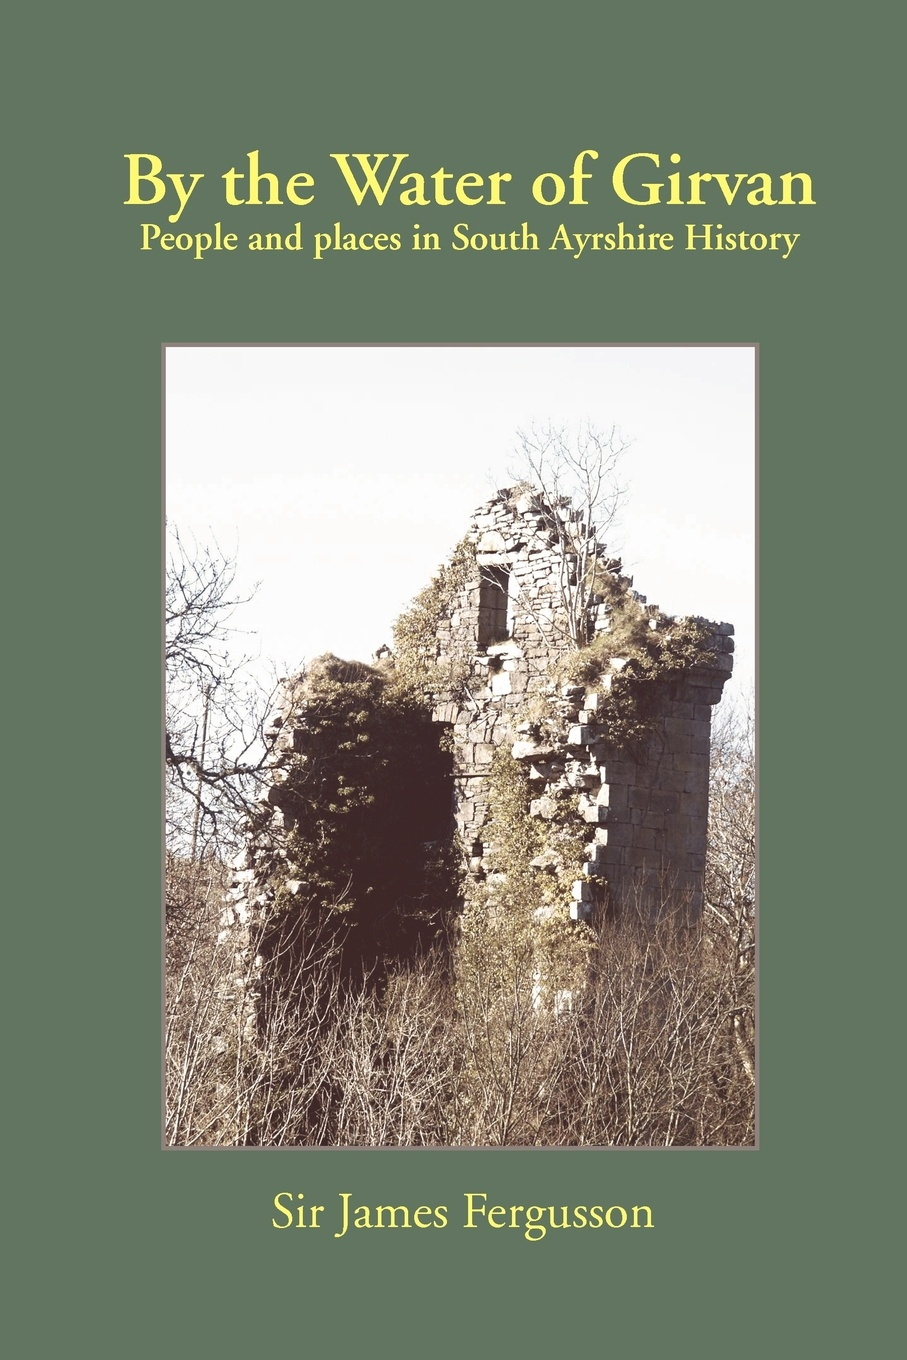 By the Water of Girvan. People and Places in South Ayrshire History